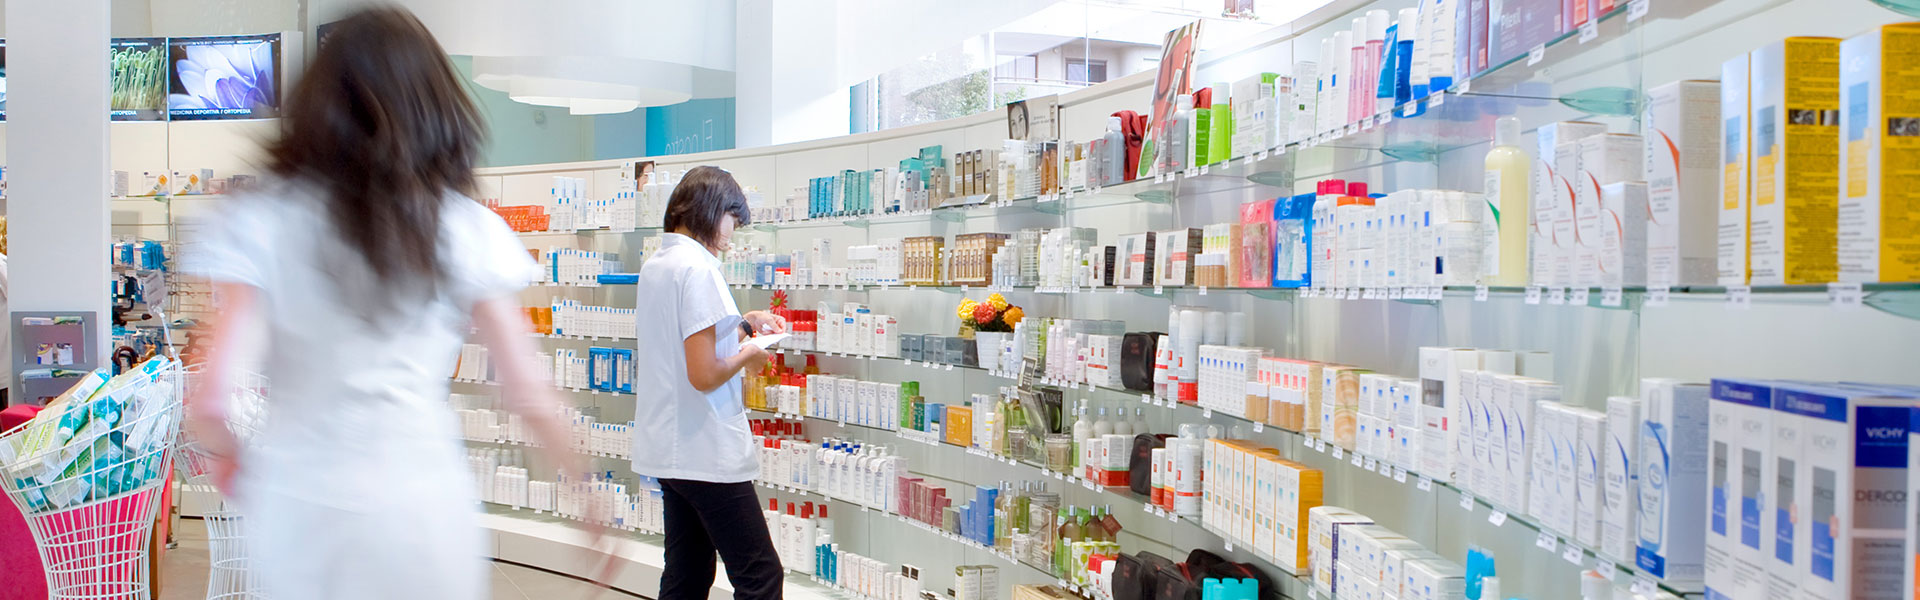 Análisis de farmacia y marketing farmaceutico